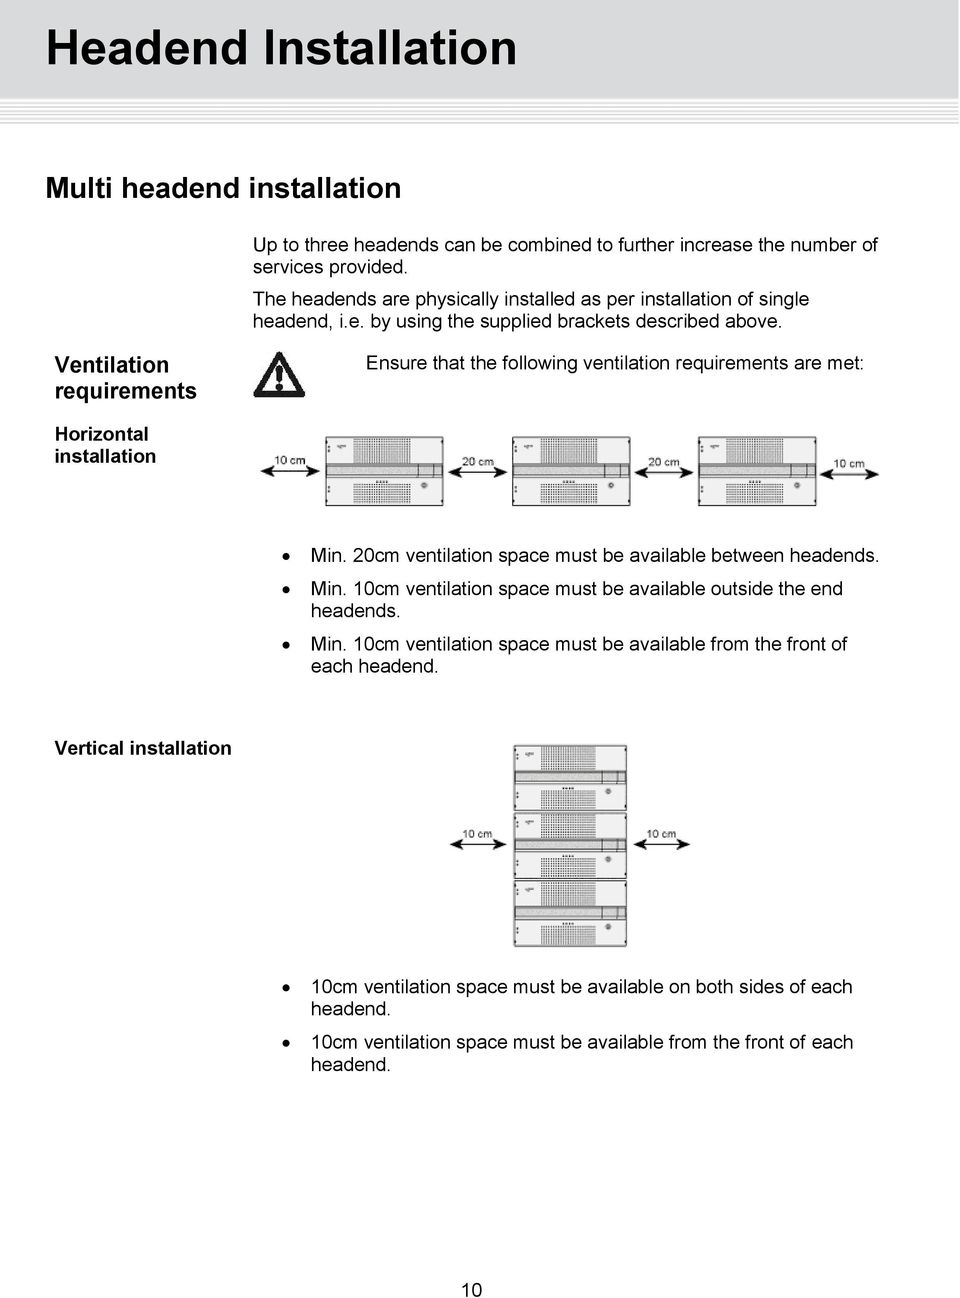 Ventilation requirements Ensure that the following ventilation requirements are met: Horizontal installation Min. 20cm ventilation space must be available between headends. Min. 10cm ventilation space must be available outside the end headends.